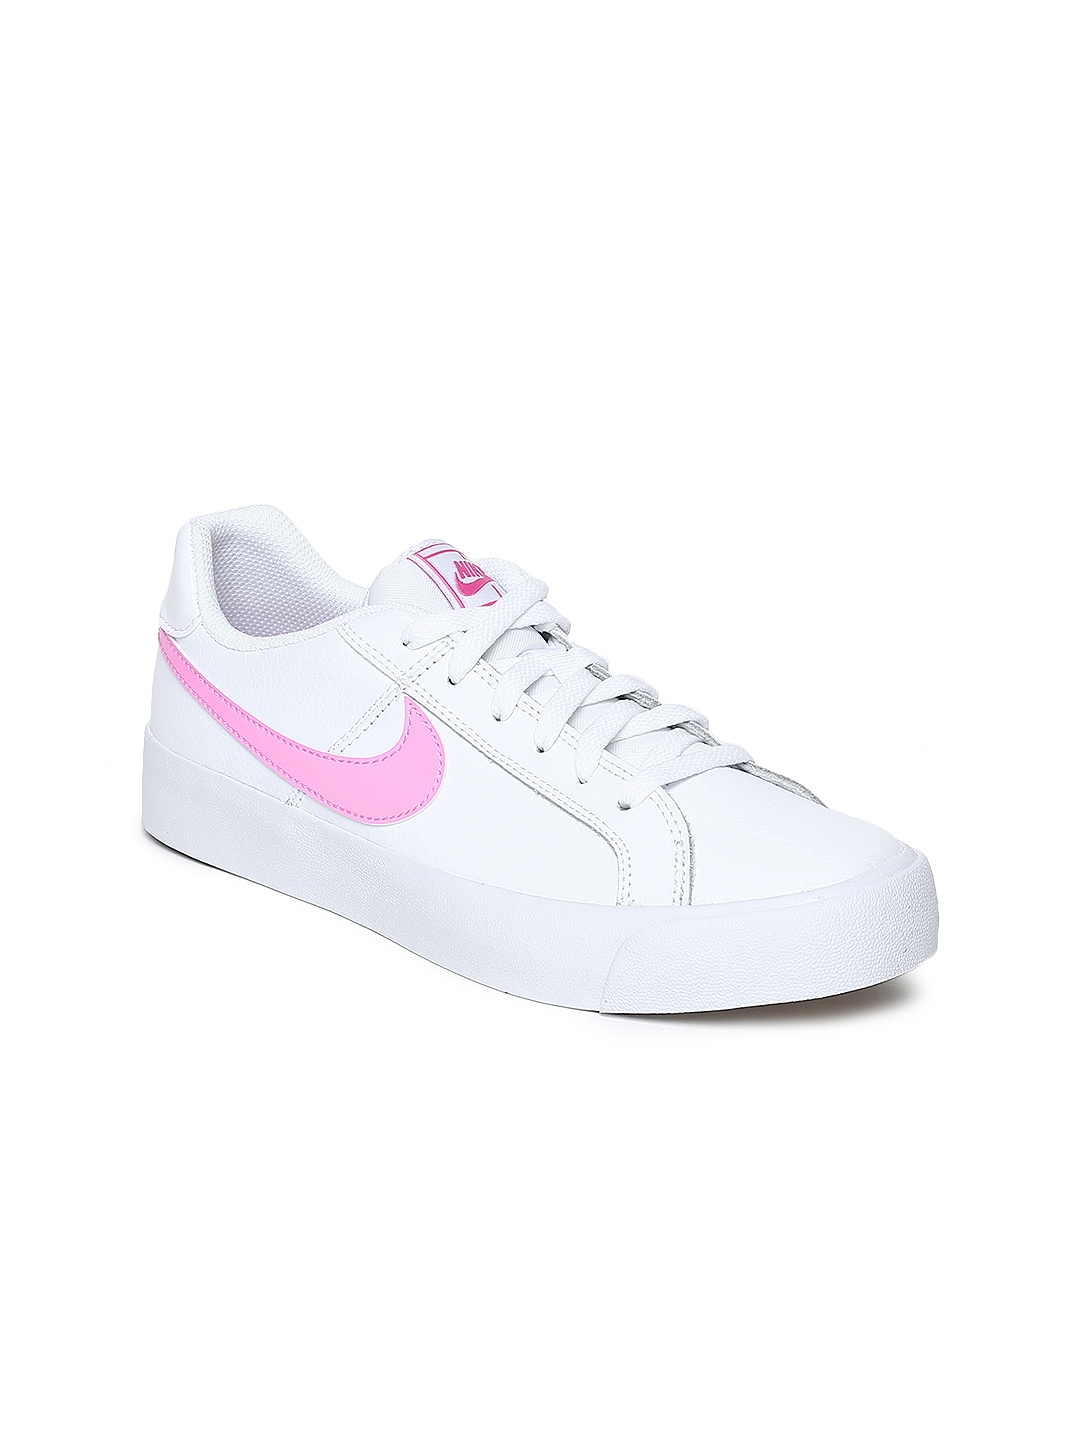 01277610cab Nike White Casual Shoe - Buy Nike White Casual Shoe online in India